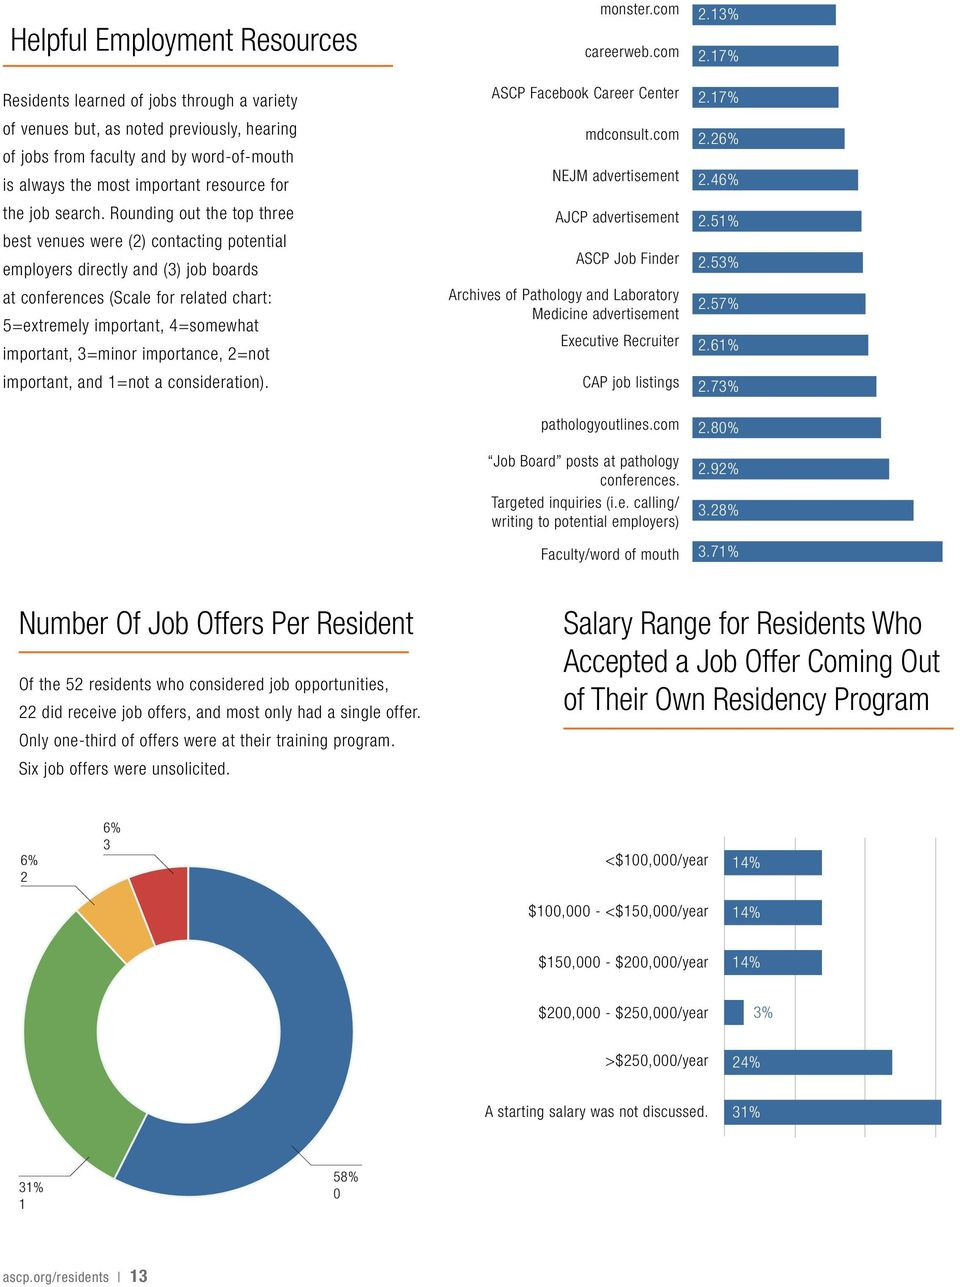 625a0ac1530 17 Residents learned of jobs through a variety of venues but